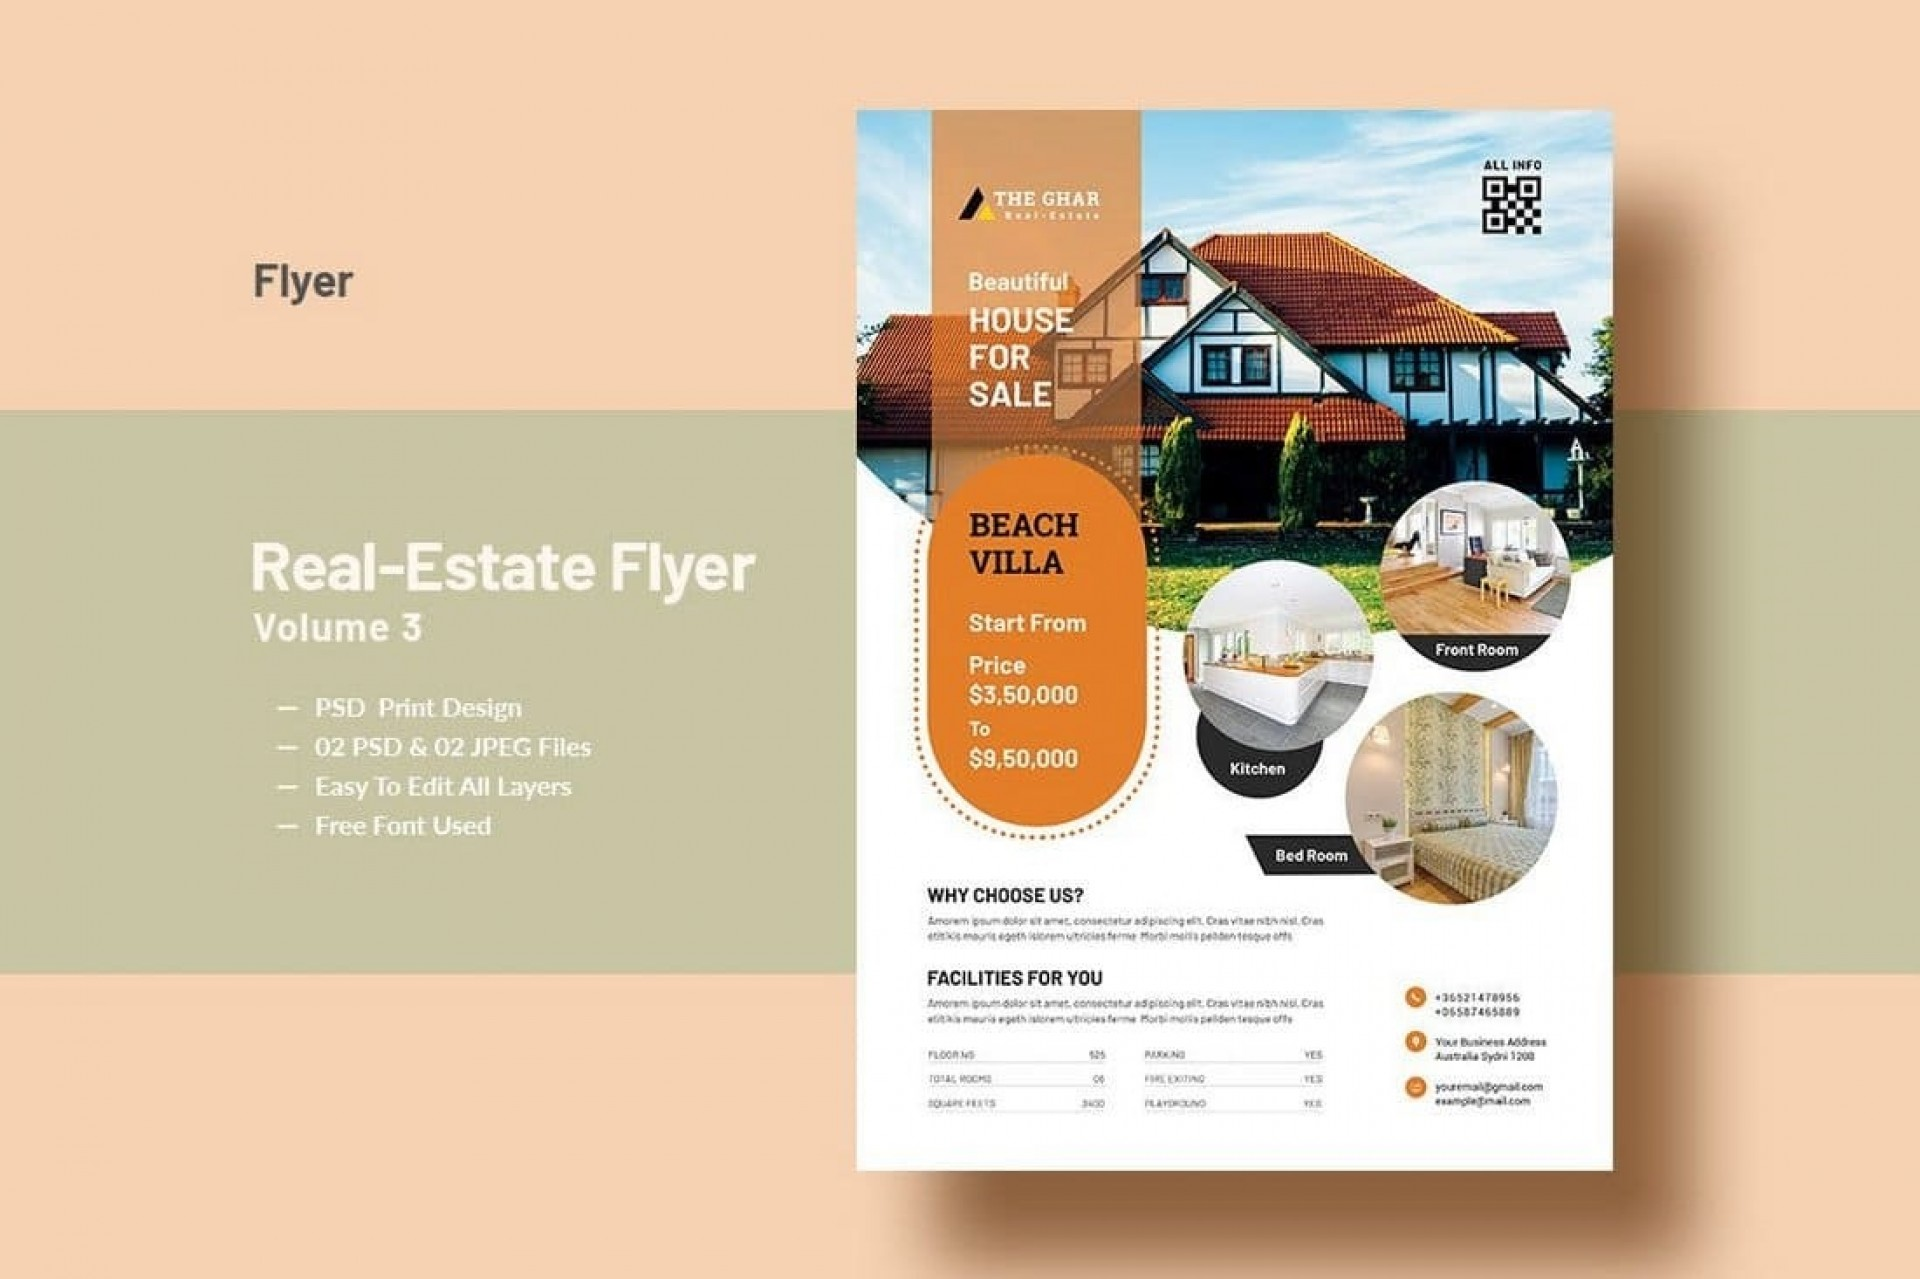 005 Impressive Real Estate Marketing Flyer Template Free Example 1920